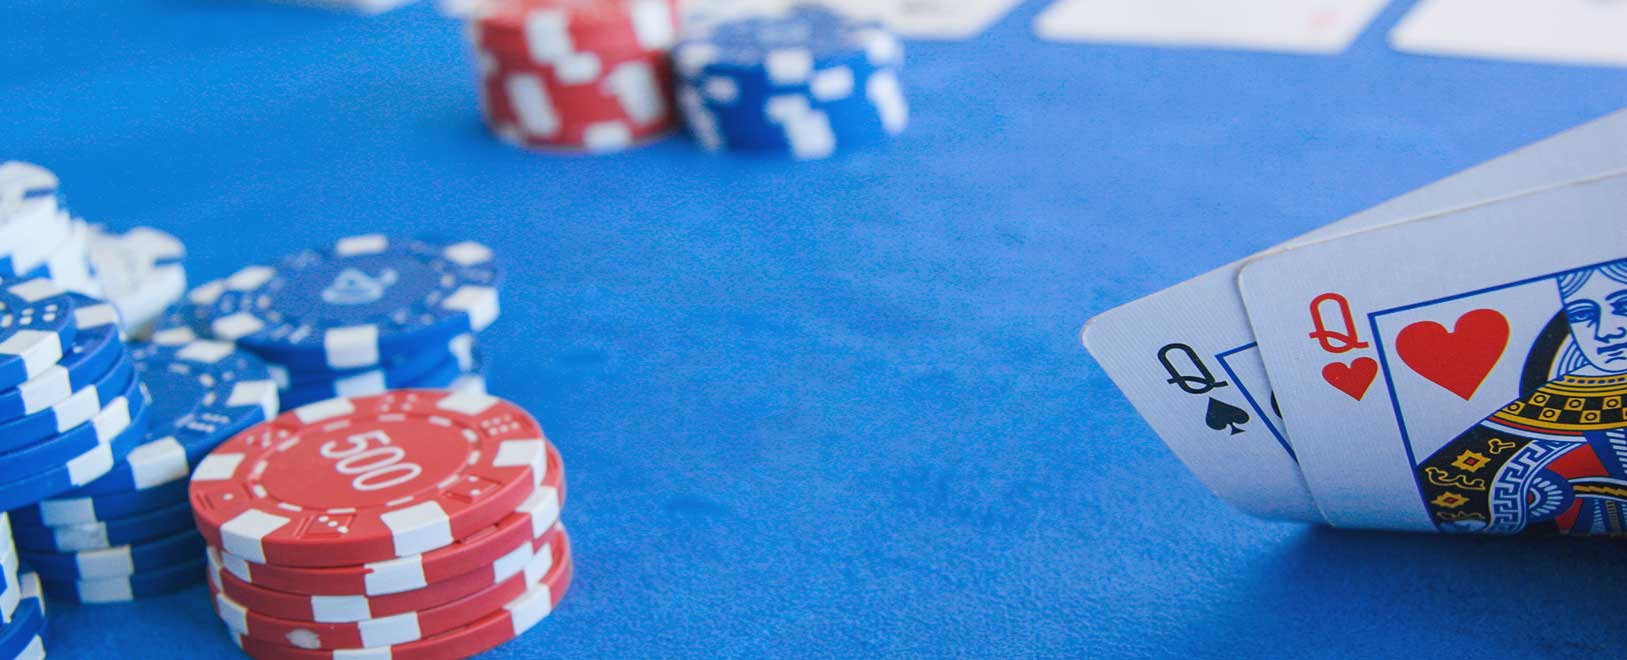 Poker-Inspired Casino Games You Can Play